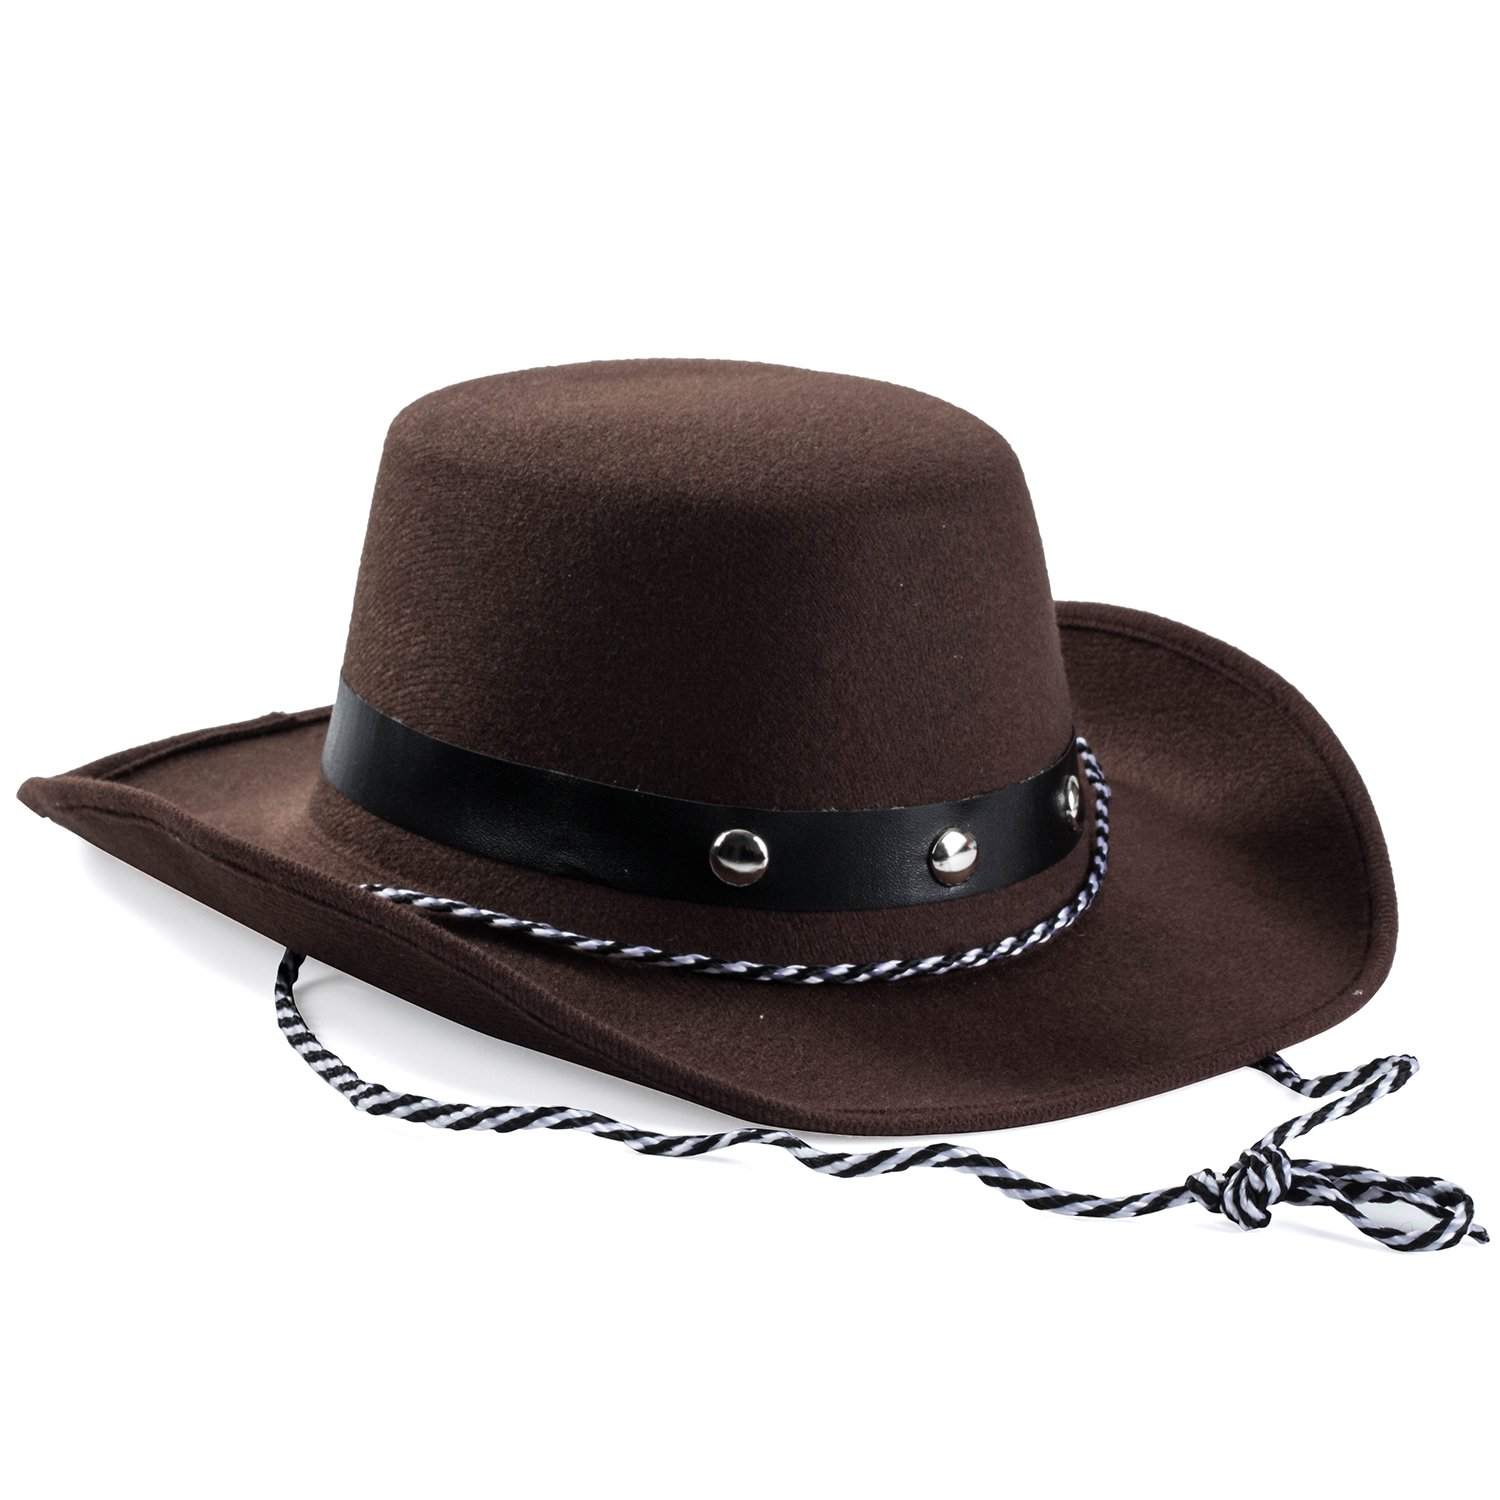 3e751375896d3f Amazon.com: Baby Cowboy Hat - Cowboy Hat Toddler – Studded Cowboy Hat -  Brown Felt Cowboy Hat - Cowboy Accessories by Funny Party Hats: Sports &  Outdoors